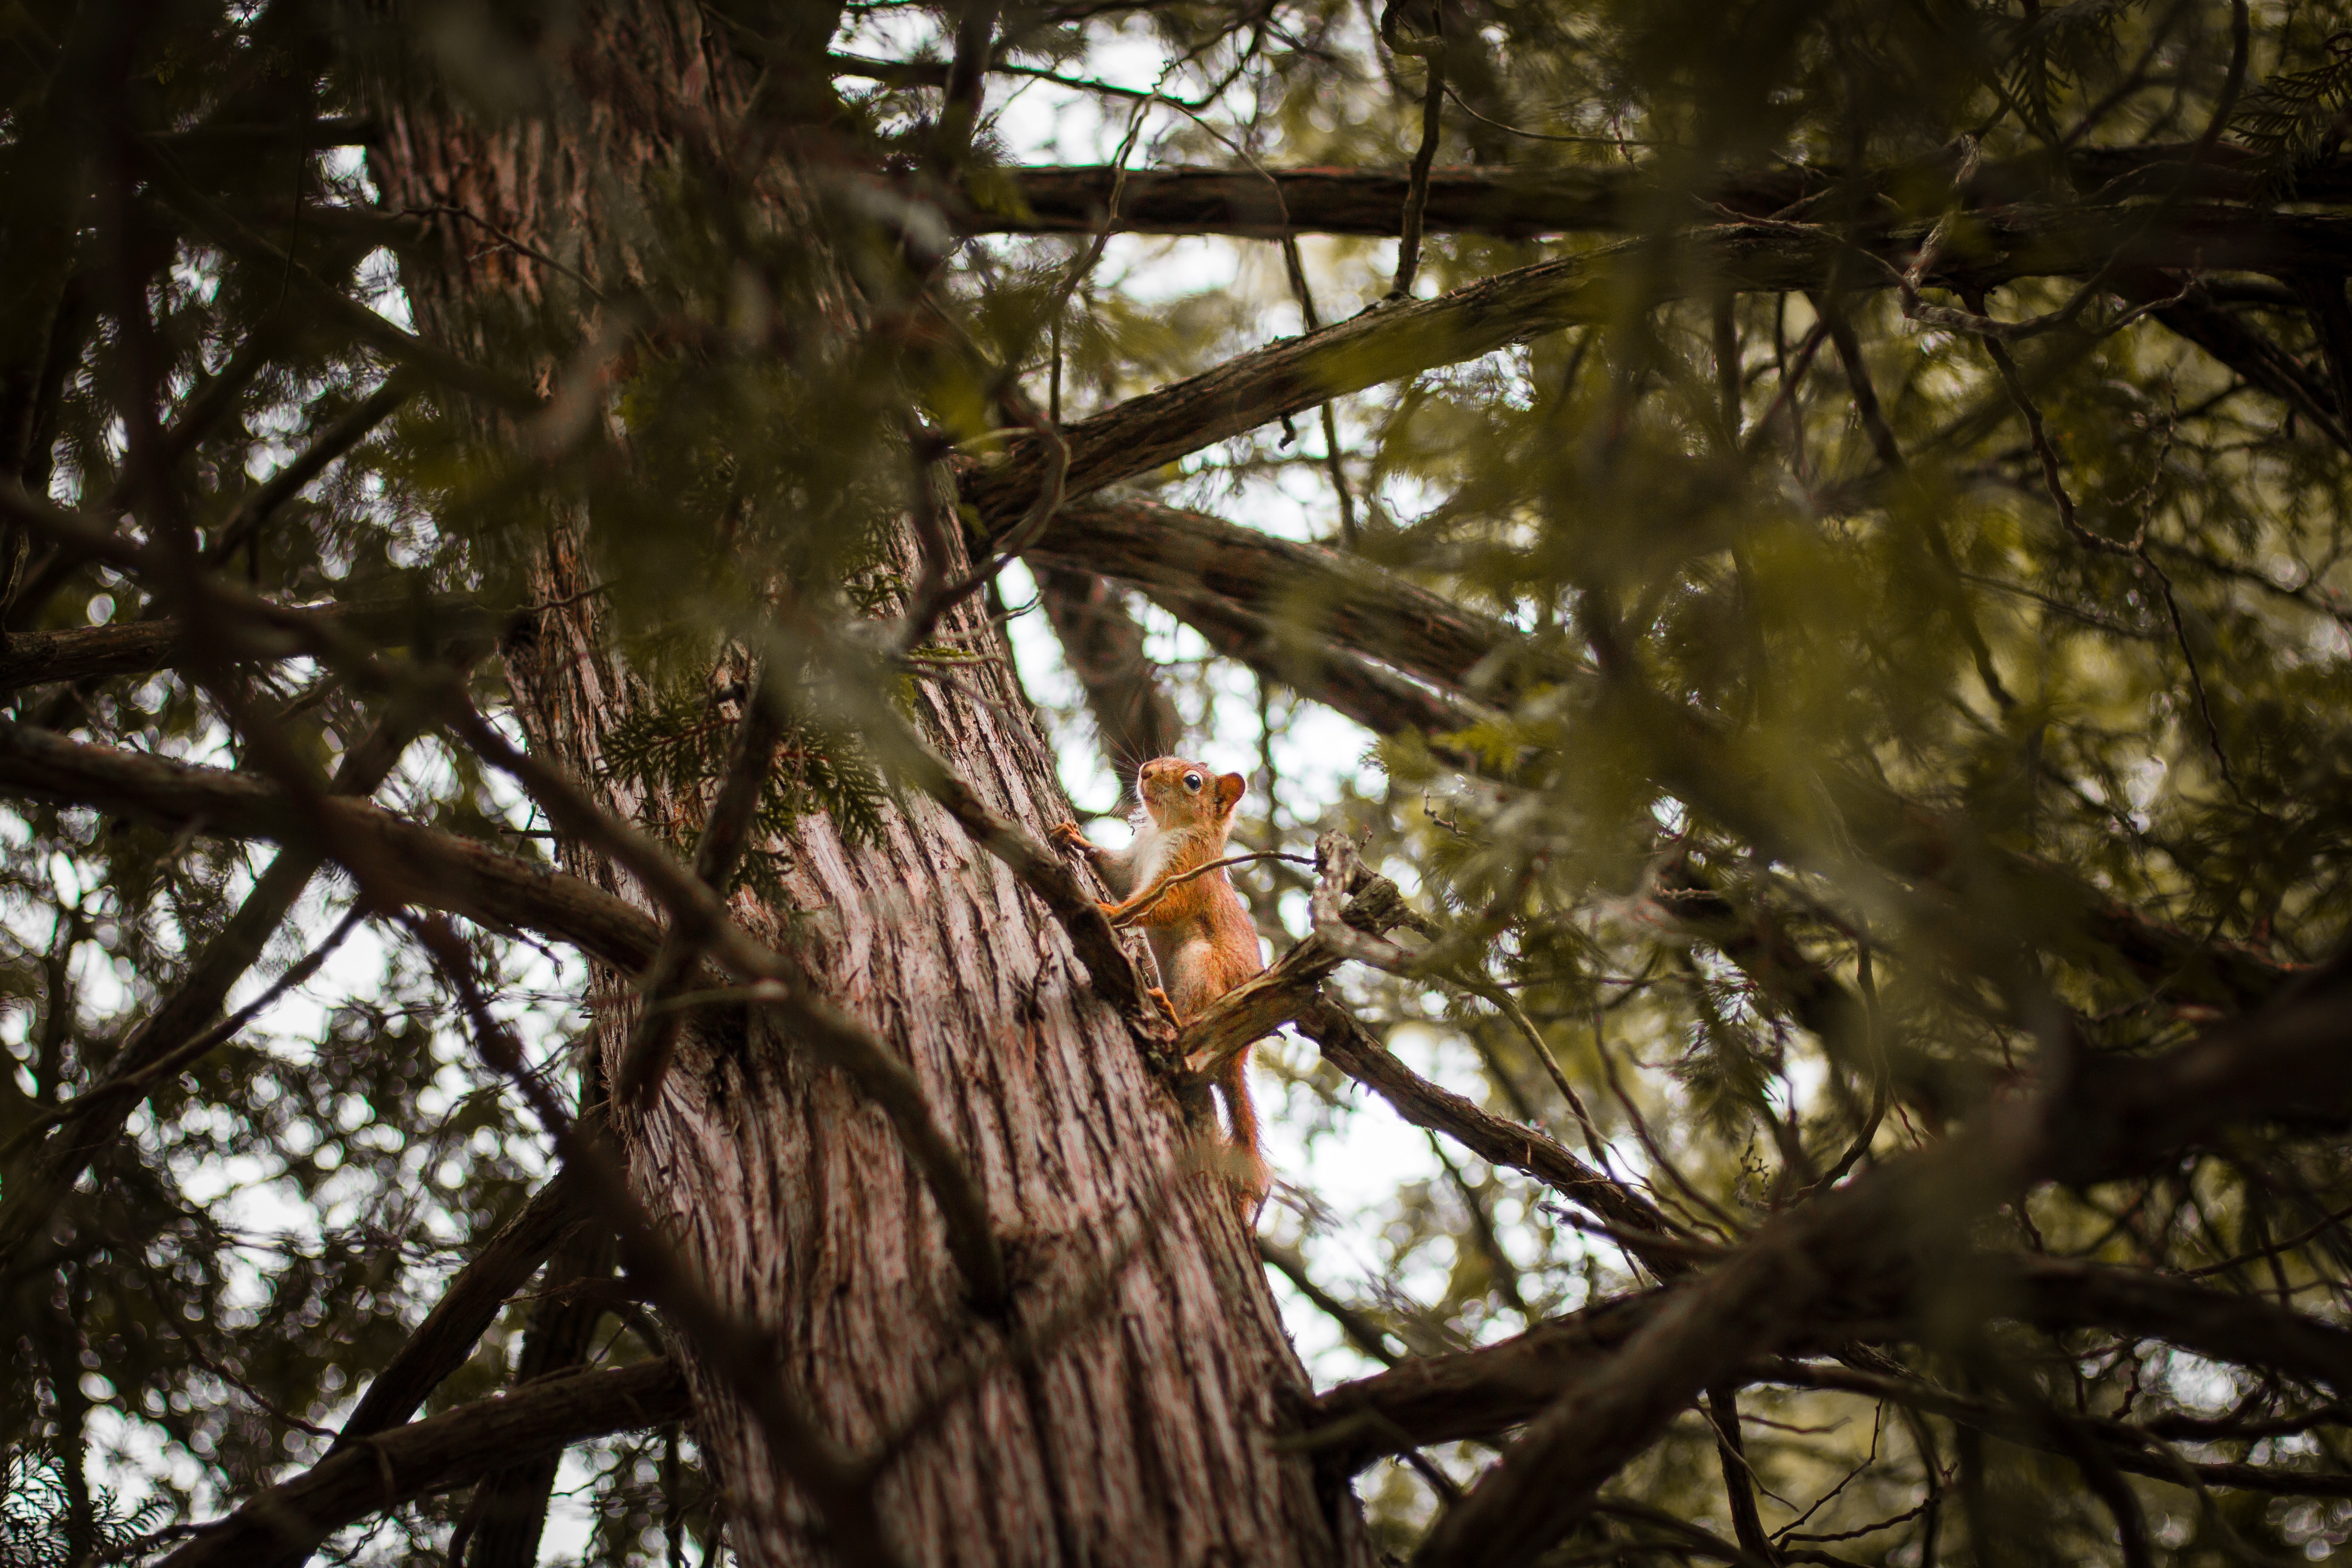 Selective Focus Photograph of Squirrel on Trunk, Animal, Branches, Close-up, Daytime, HQ Photo